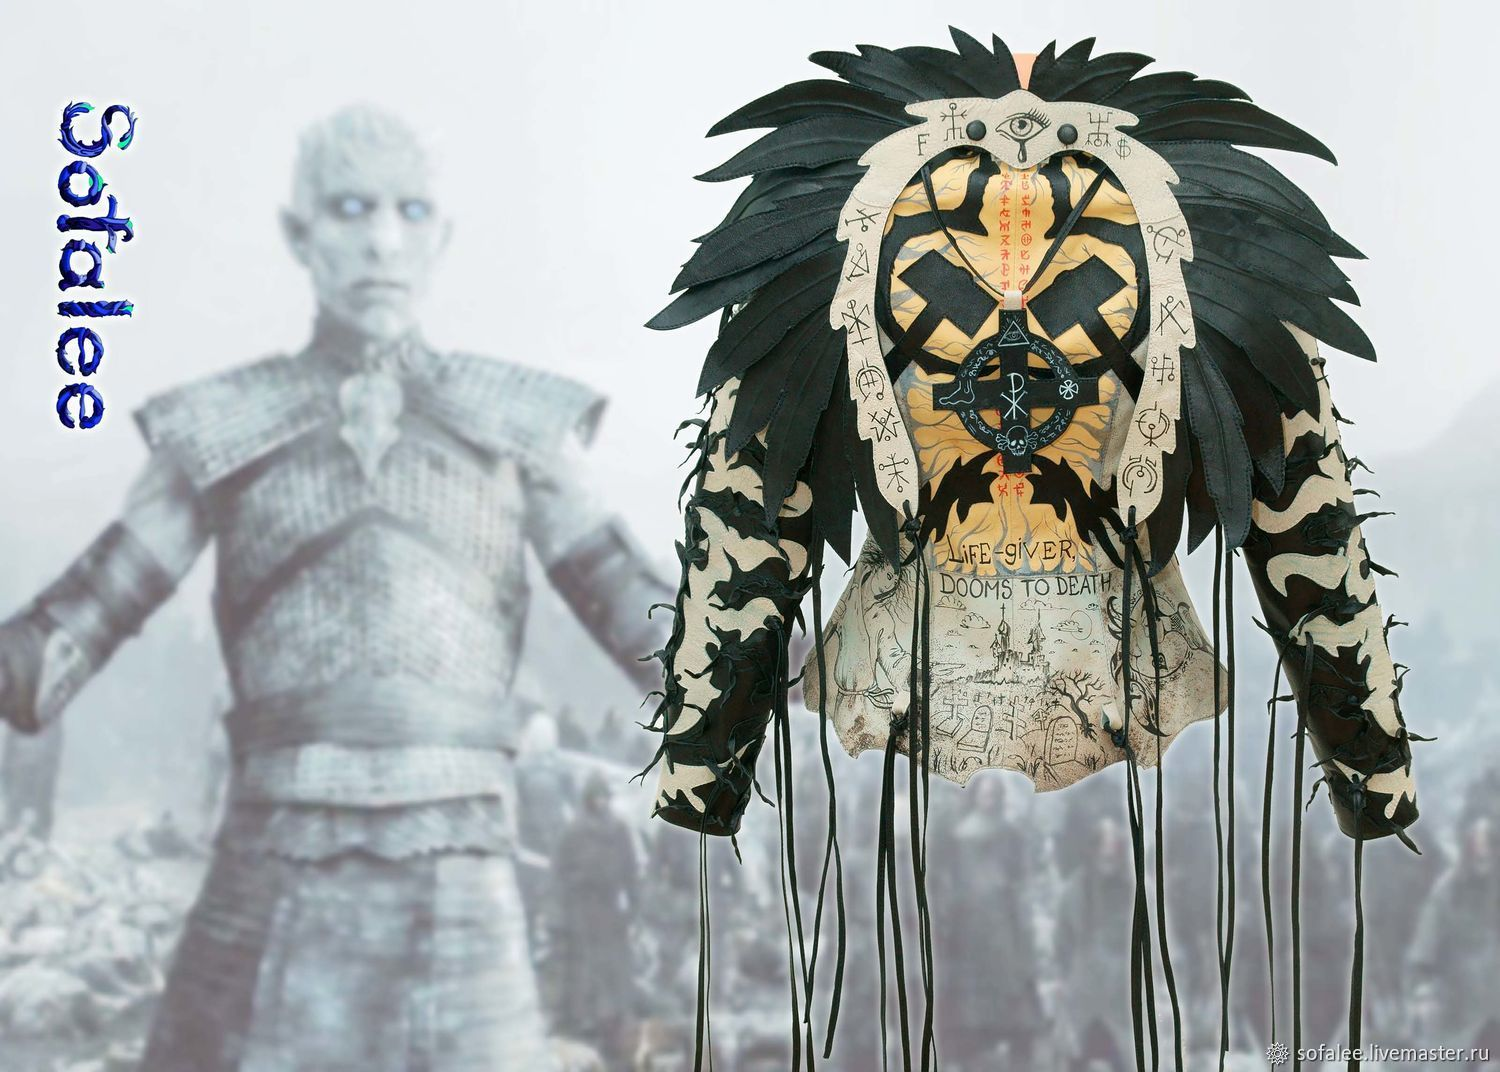 Jacket made of genuine leather with painting, fringe and wings, Outerwear Jackets, Moscow,  Фото №1